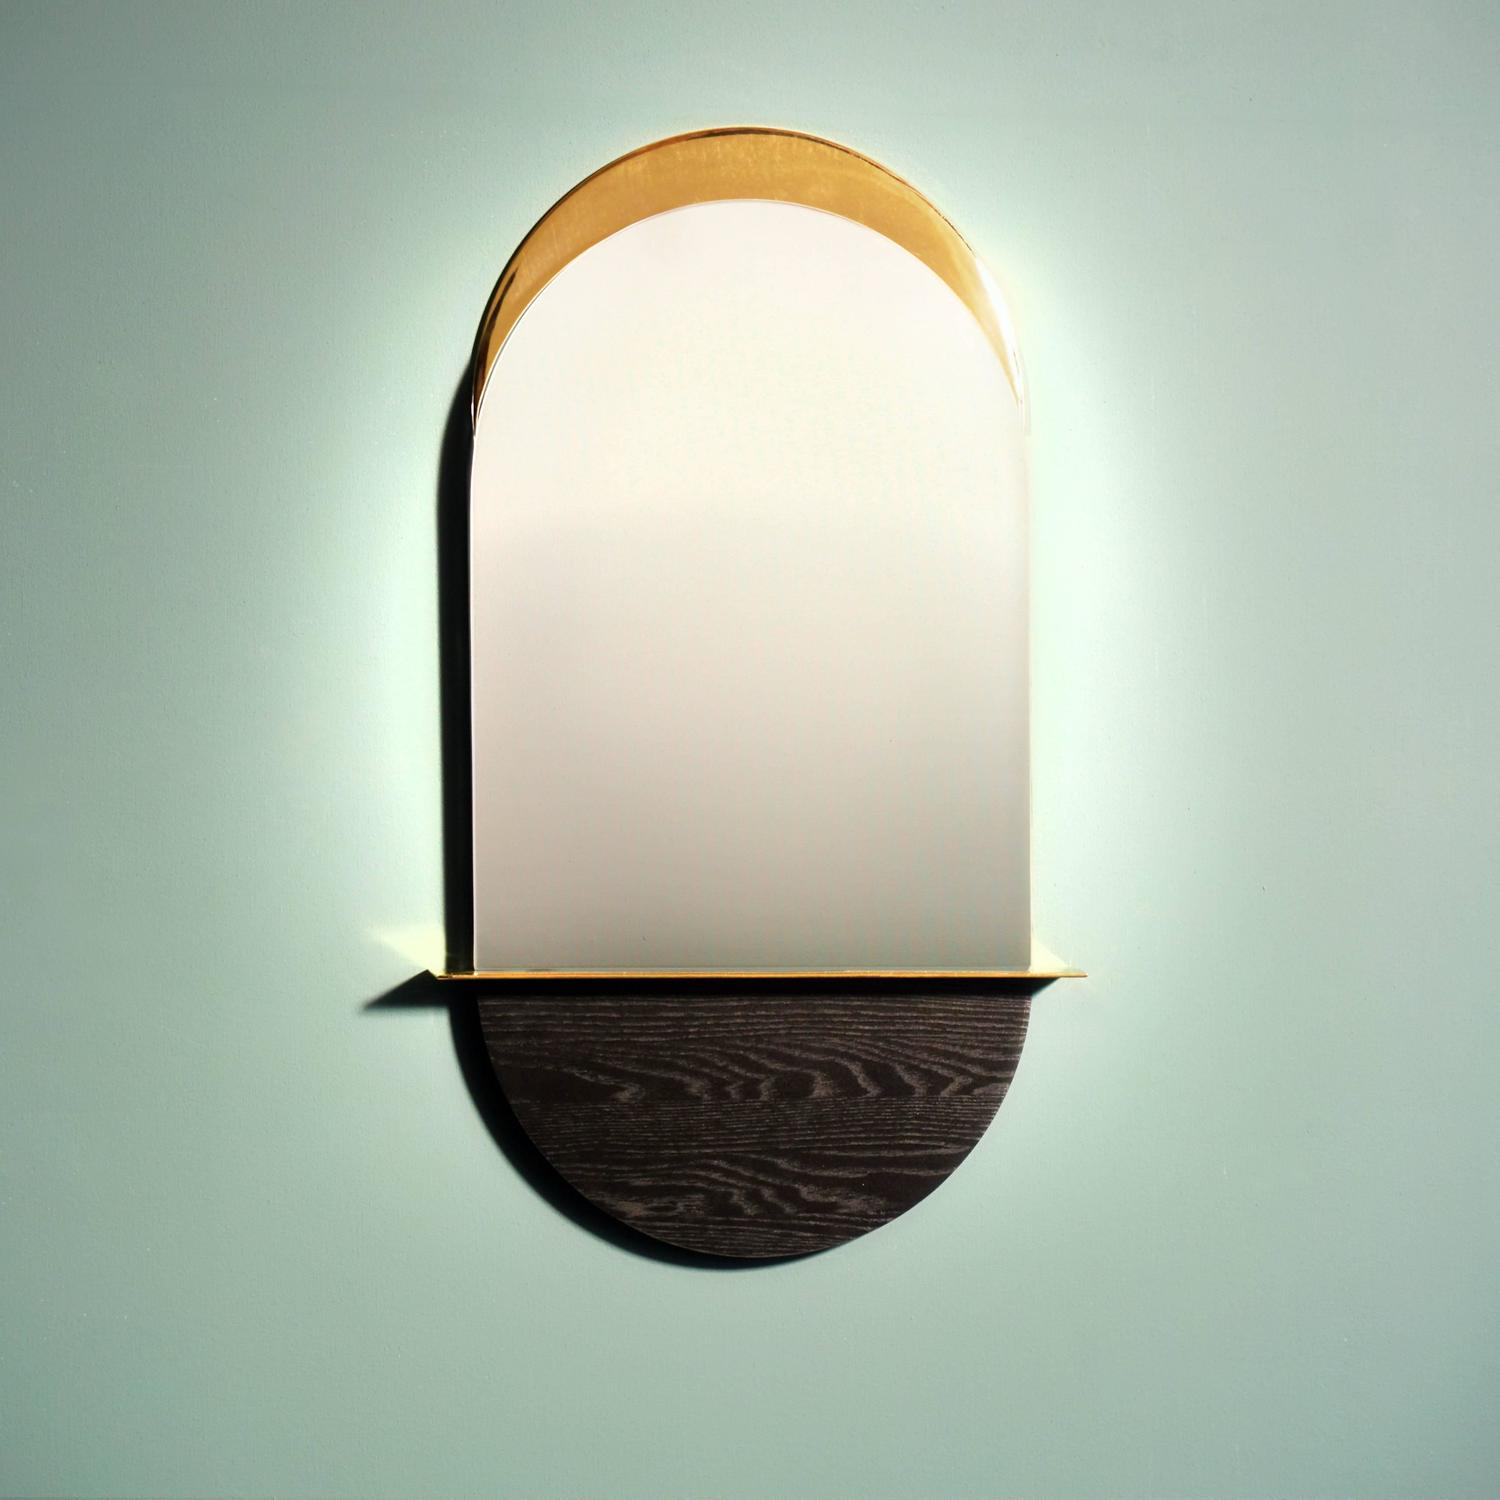 Solis Mirror, Small, in Lacquered Brass and Blackened Ash by Simon ...